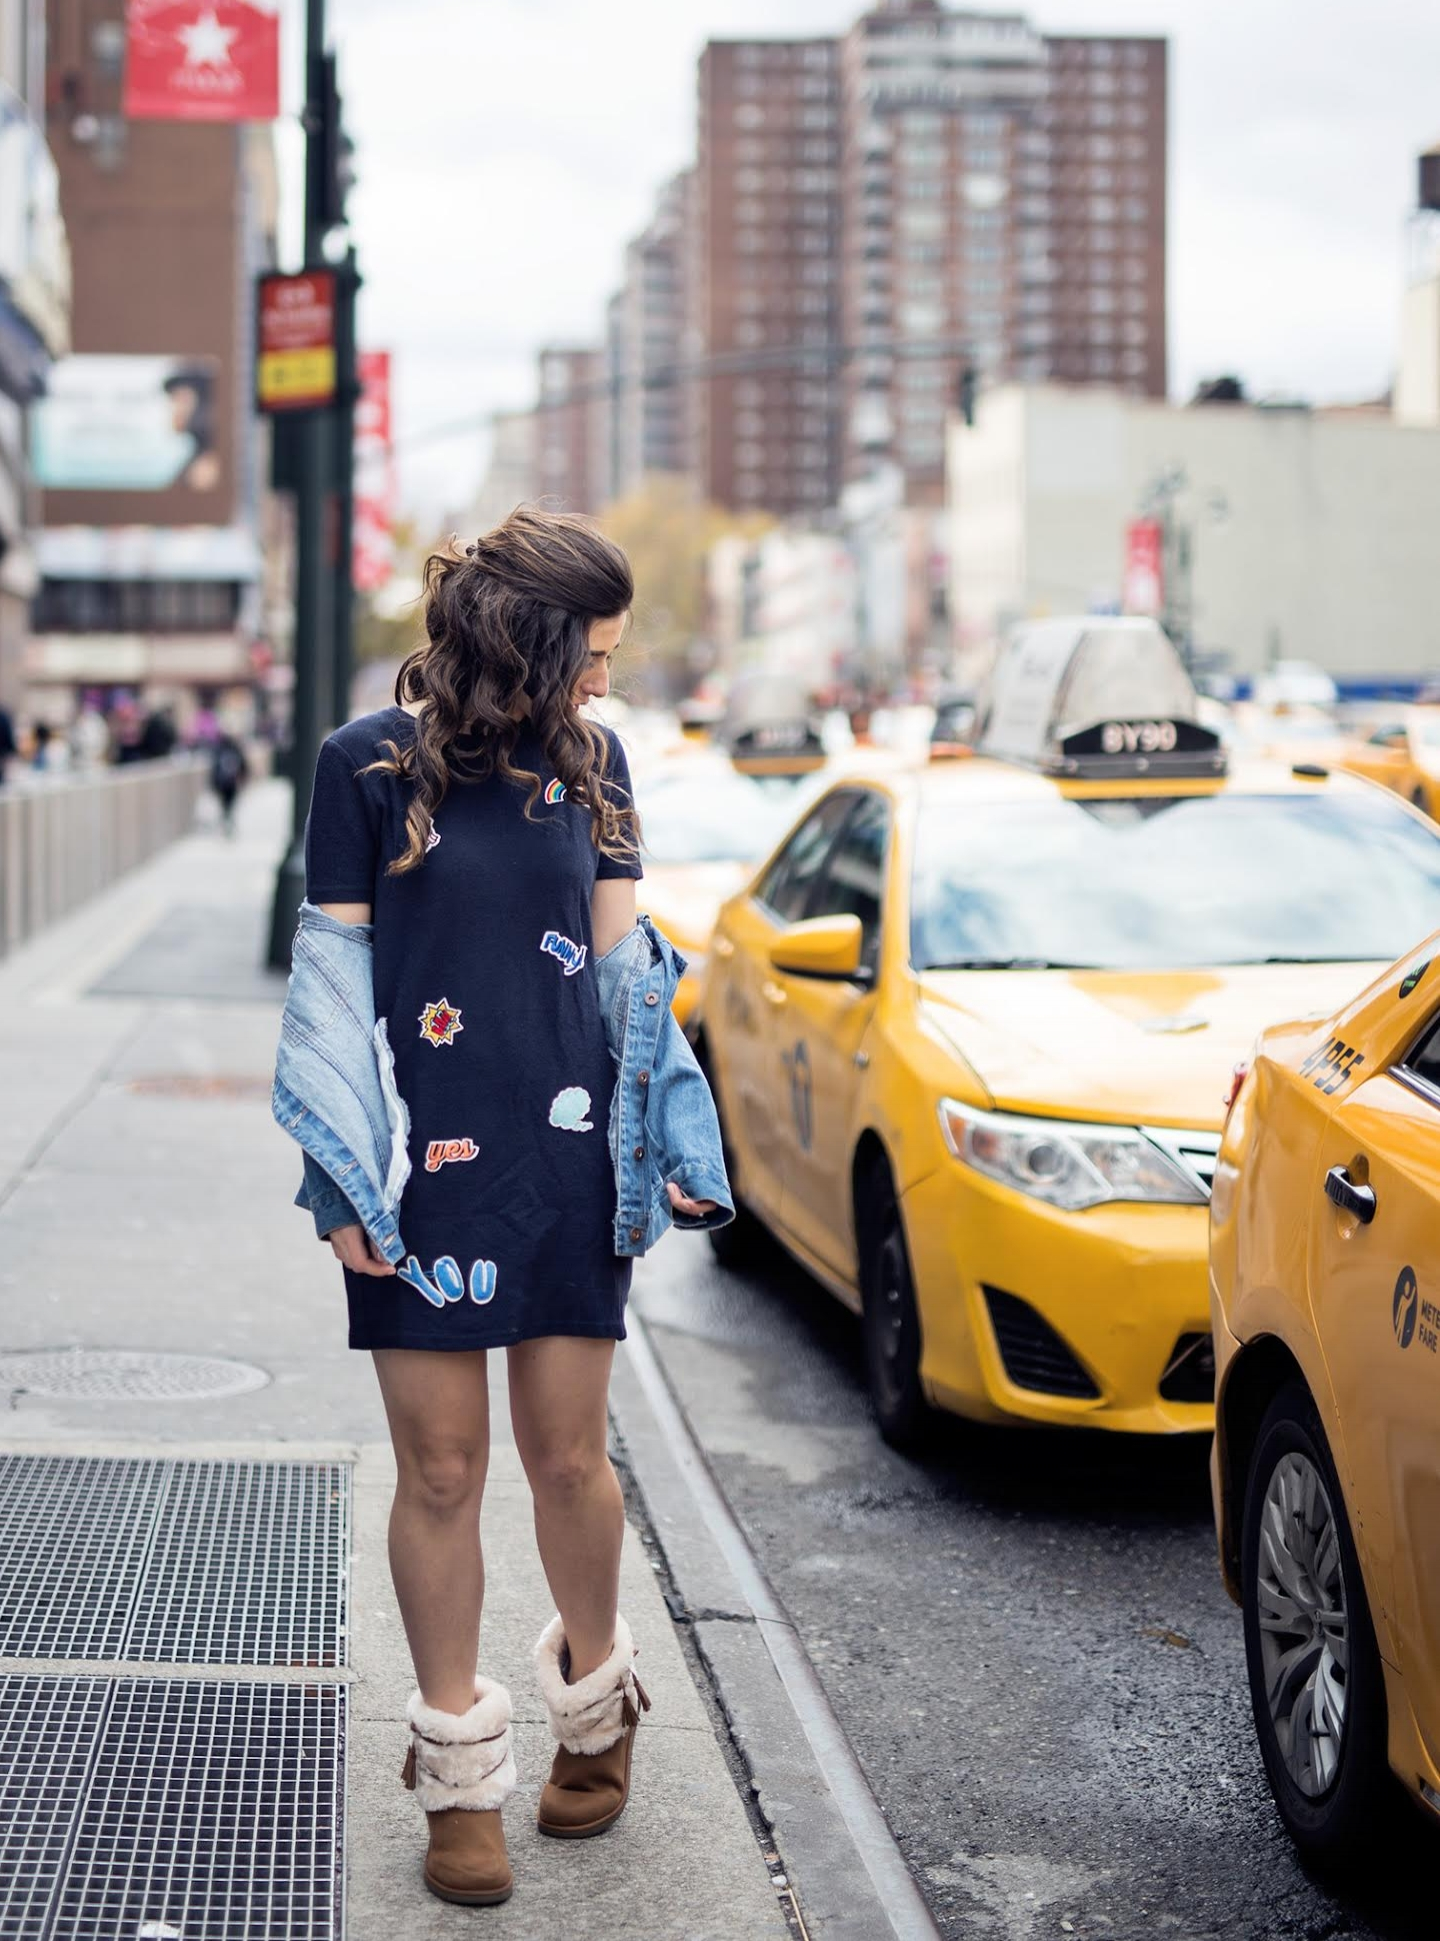 Patch Dress Cozy Payless Boots Louboutins & Love Fashion Blog Esther Santer NYC Street Style Blogger Outfit OOTD Trendy Hair Model Girl Women Online Shopping City Lifestyle Navy Jean Denim Jacket Zara Beauty  Winter Faux Fur Budget Friendly Affordable.jpg